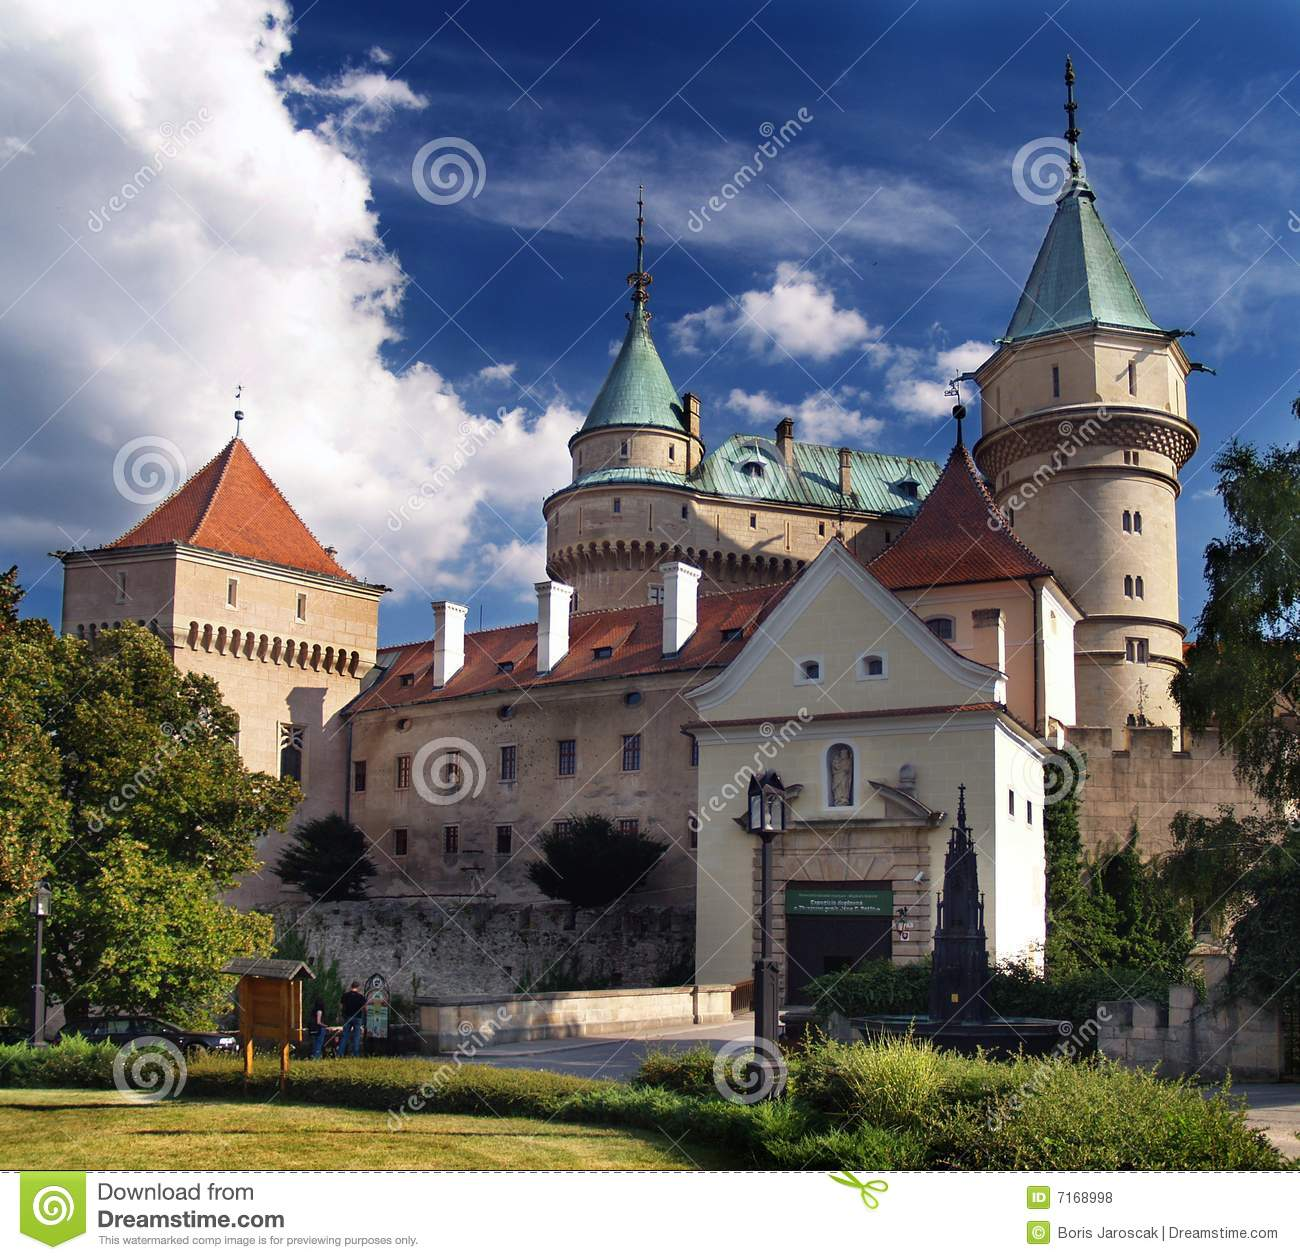 Bojnice castle - Entrance